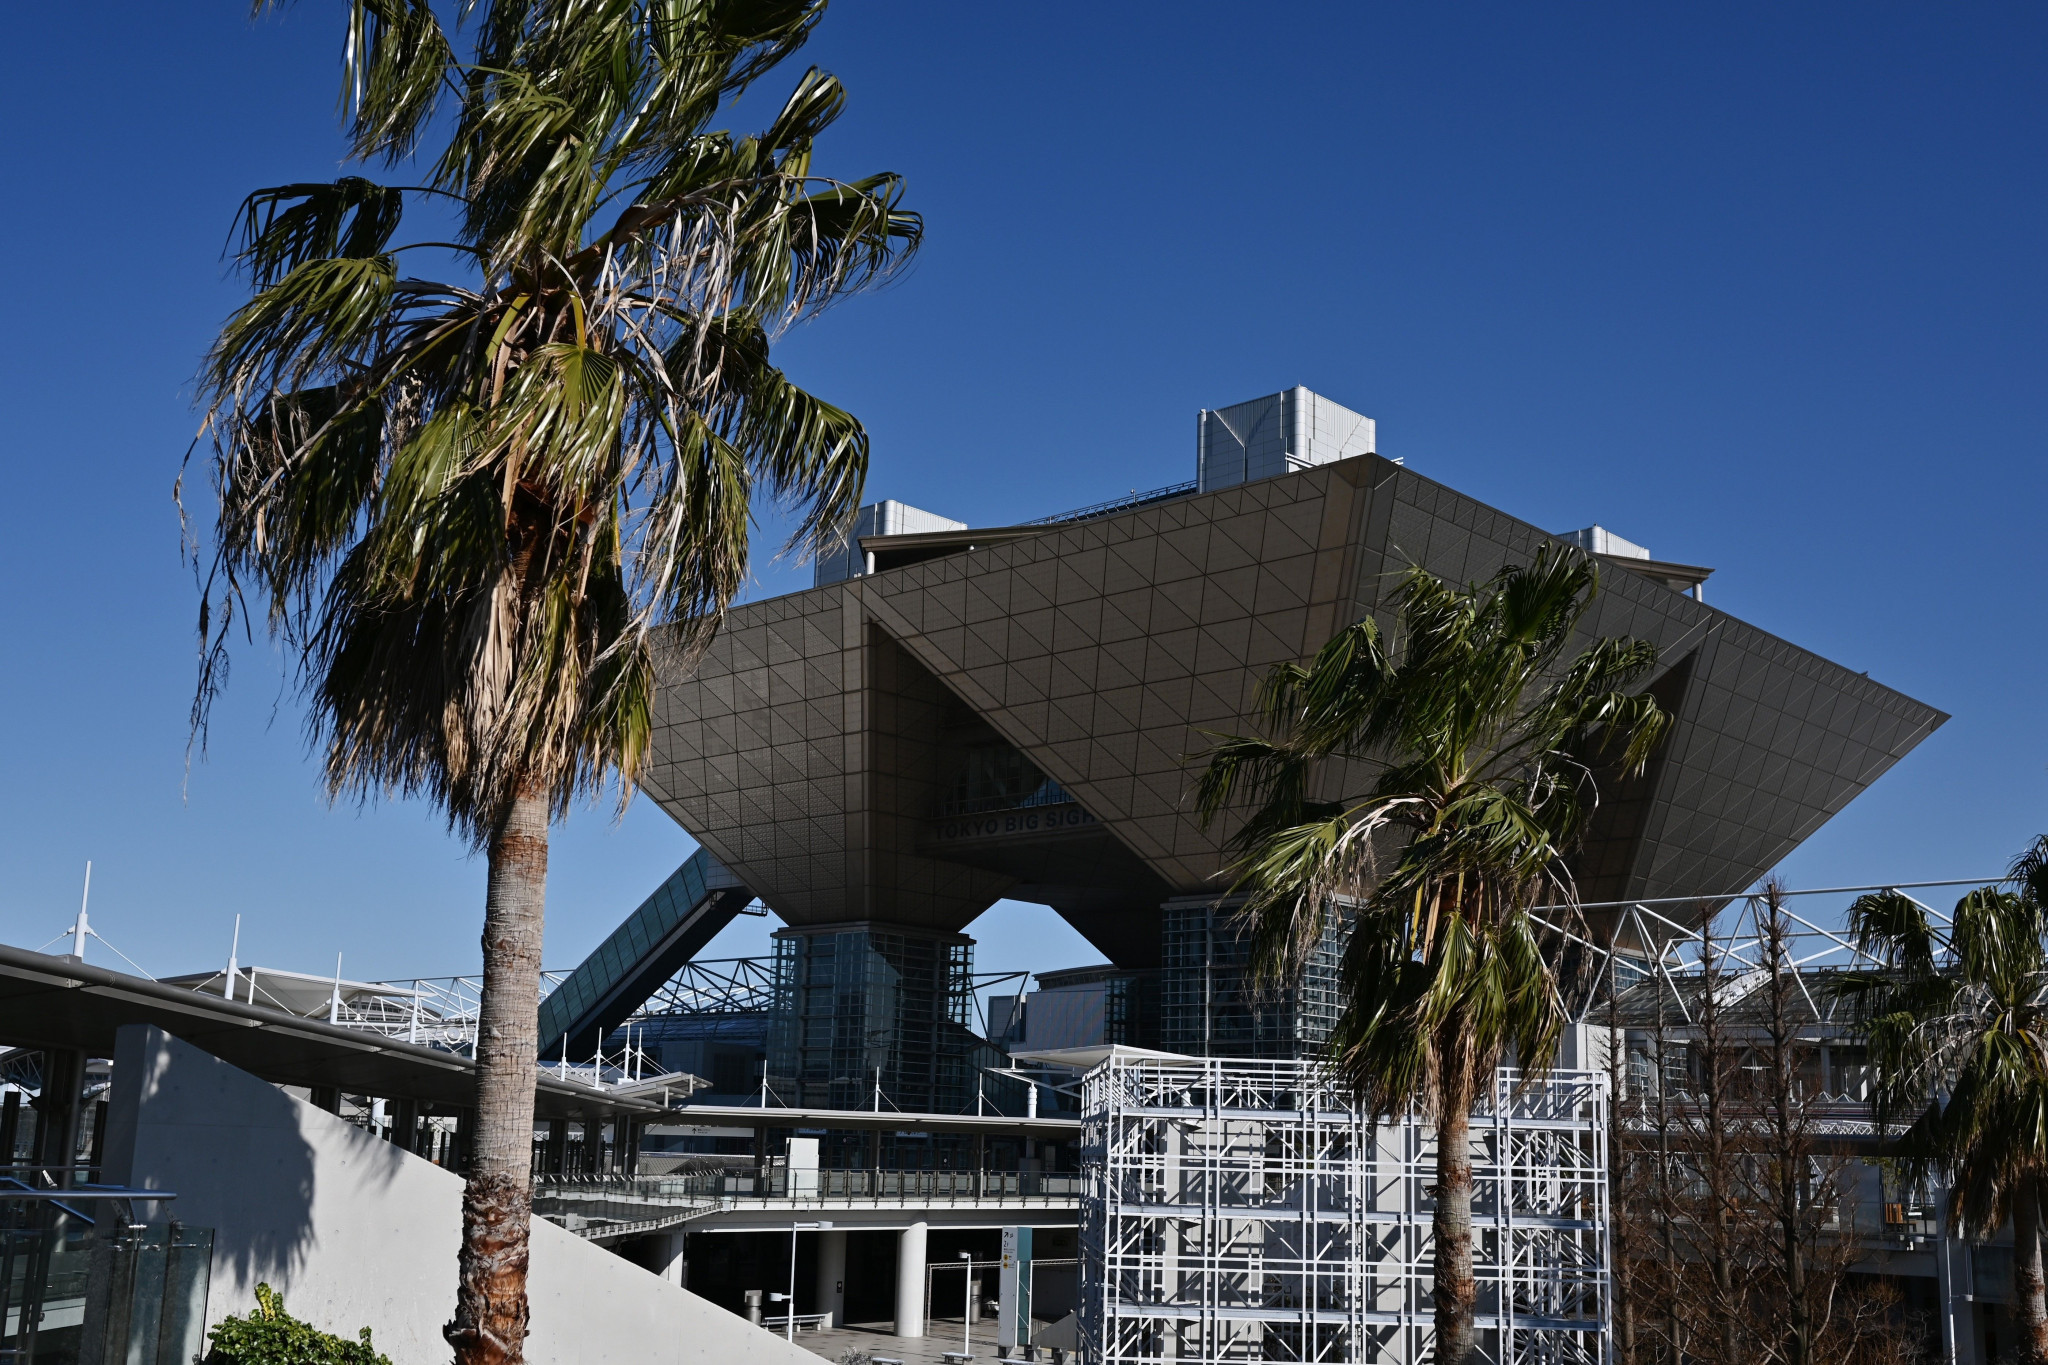 The Tokyo Big Sight was one of the last Olympic venues to be secured for 2021 ©Getty Images